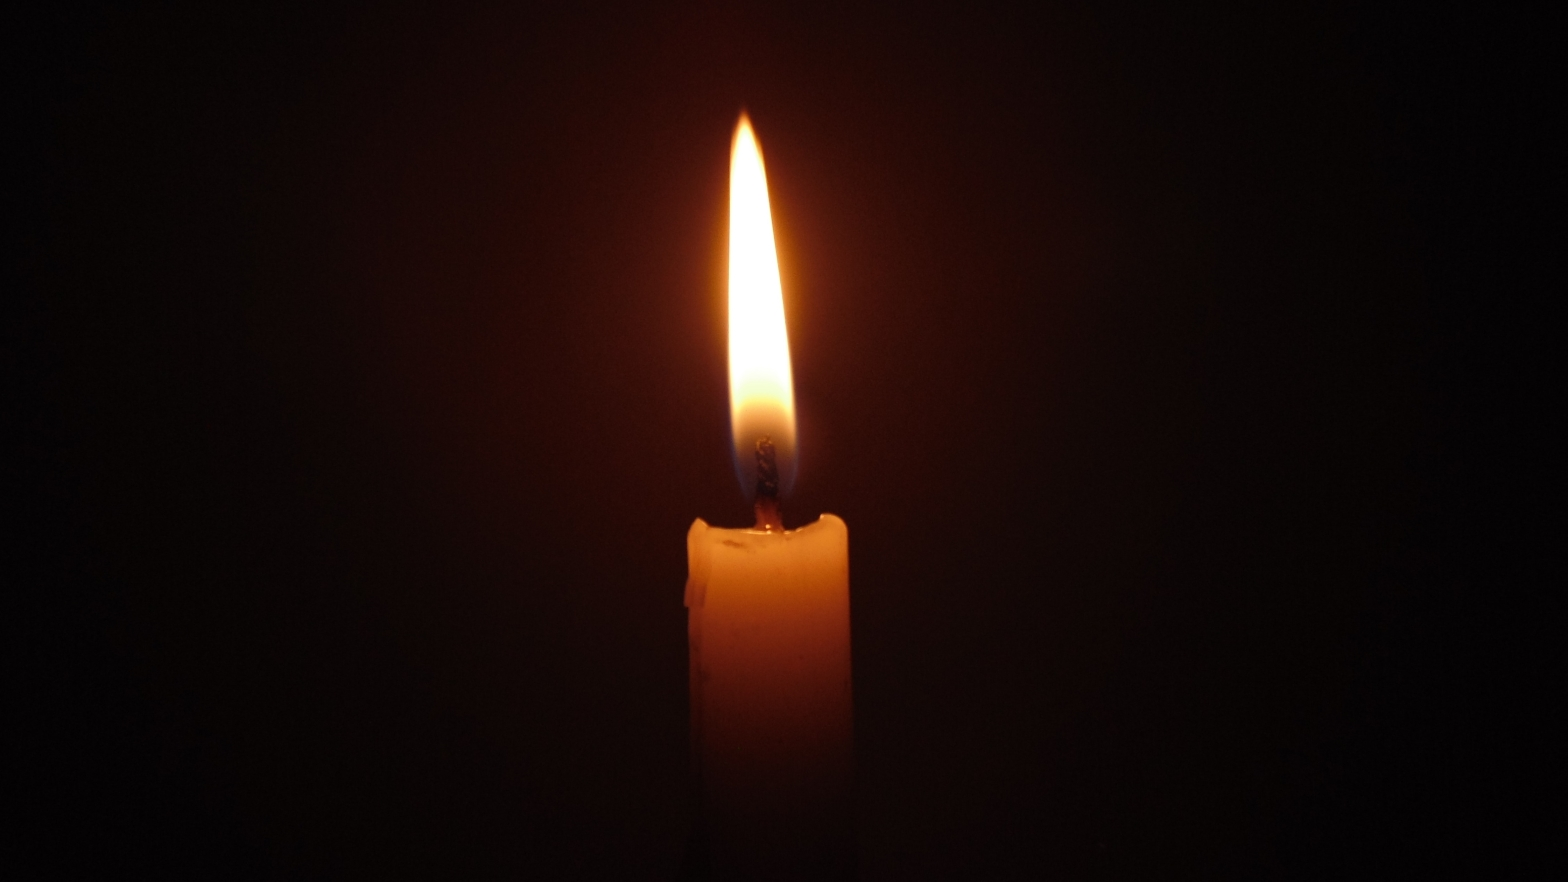 Image is of a lit candle